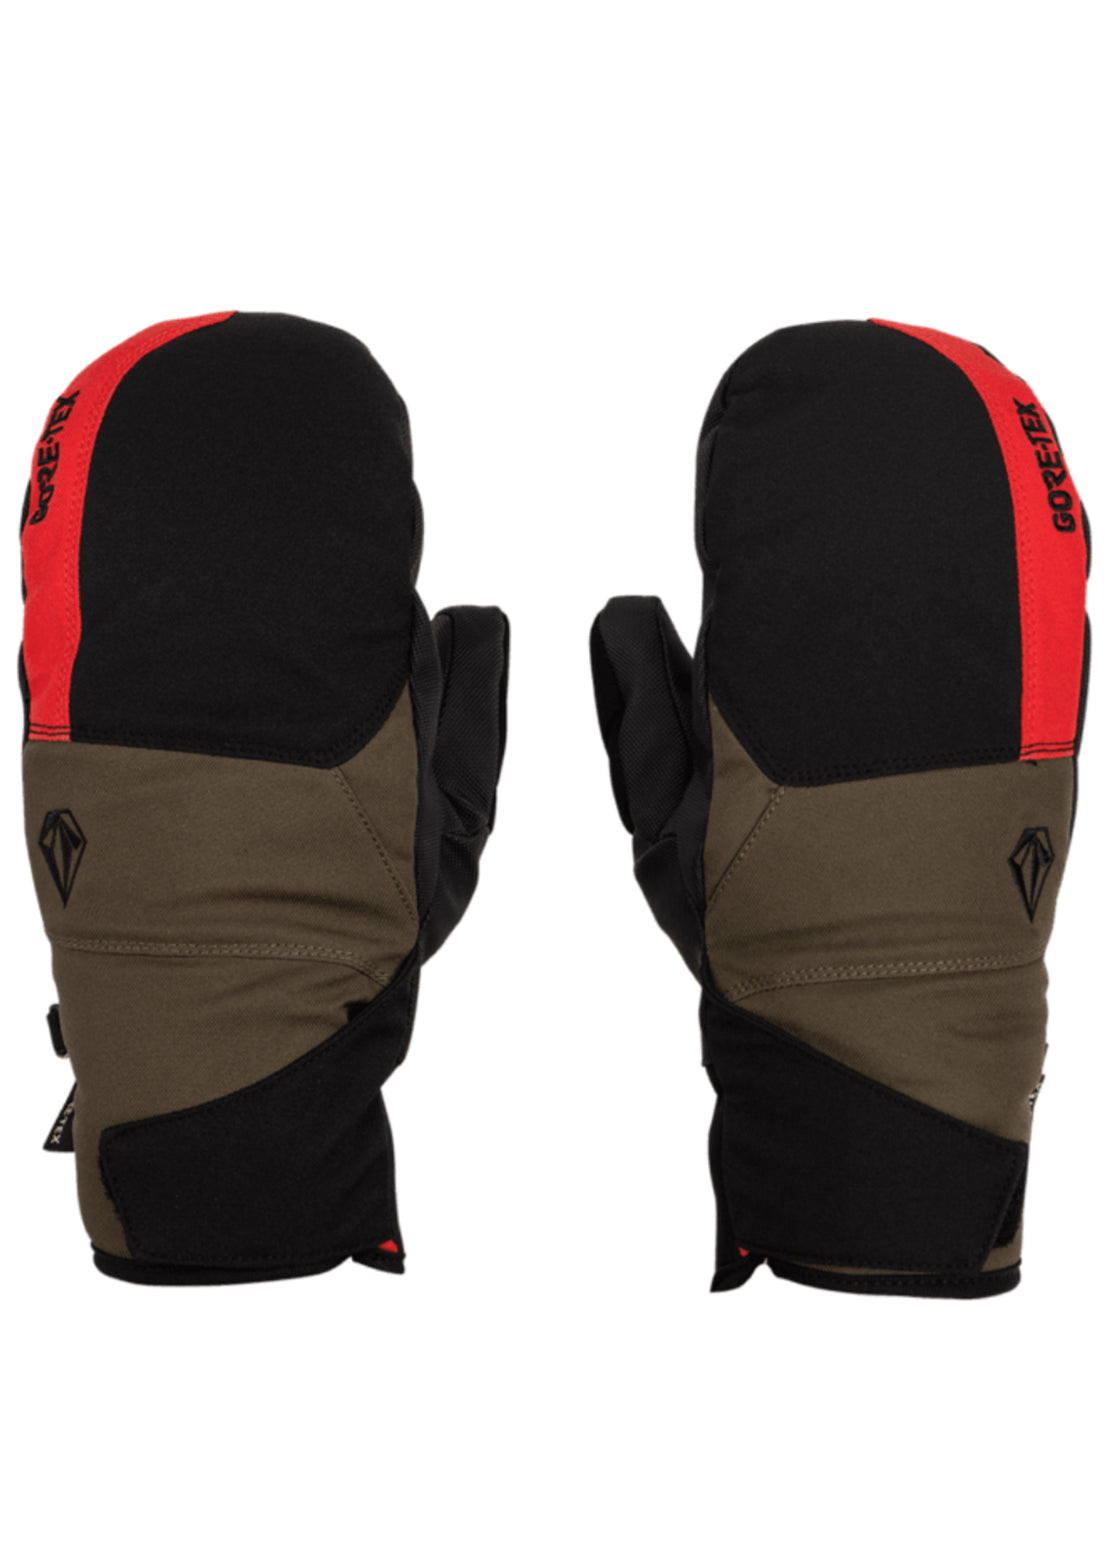 Volcom Men's Stay Dry GORE-TEX Mitts Red